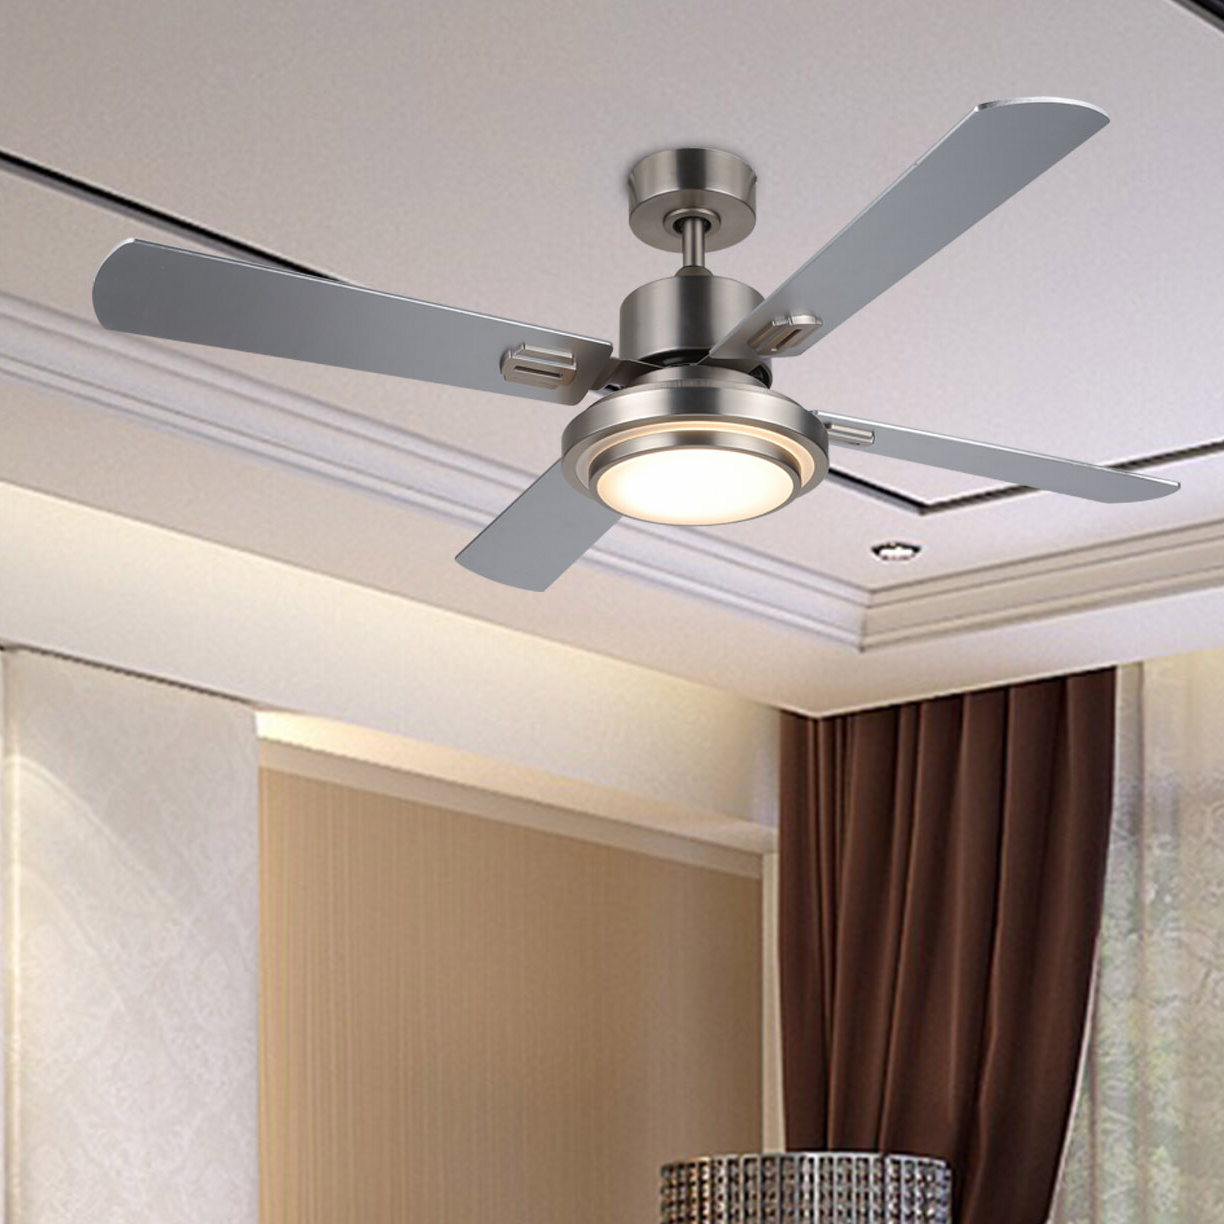 "Preferred Norah 5 Blade Ceiling Fans Pertaining To 52"" Santaana 4 Blade Led Ceiling Fan With Remote, Light Kit Included (View 16 of 20)"